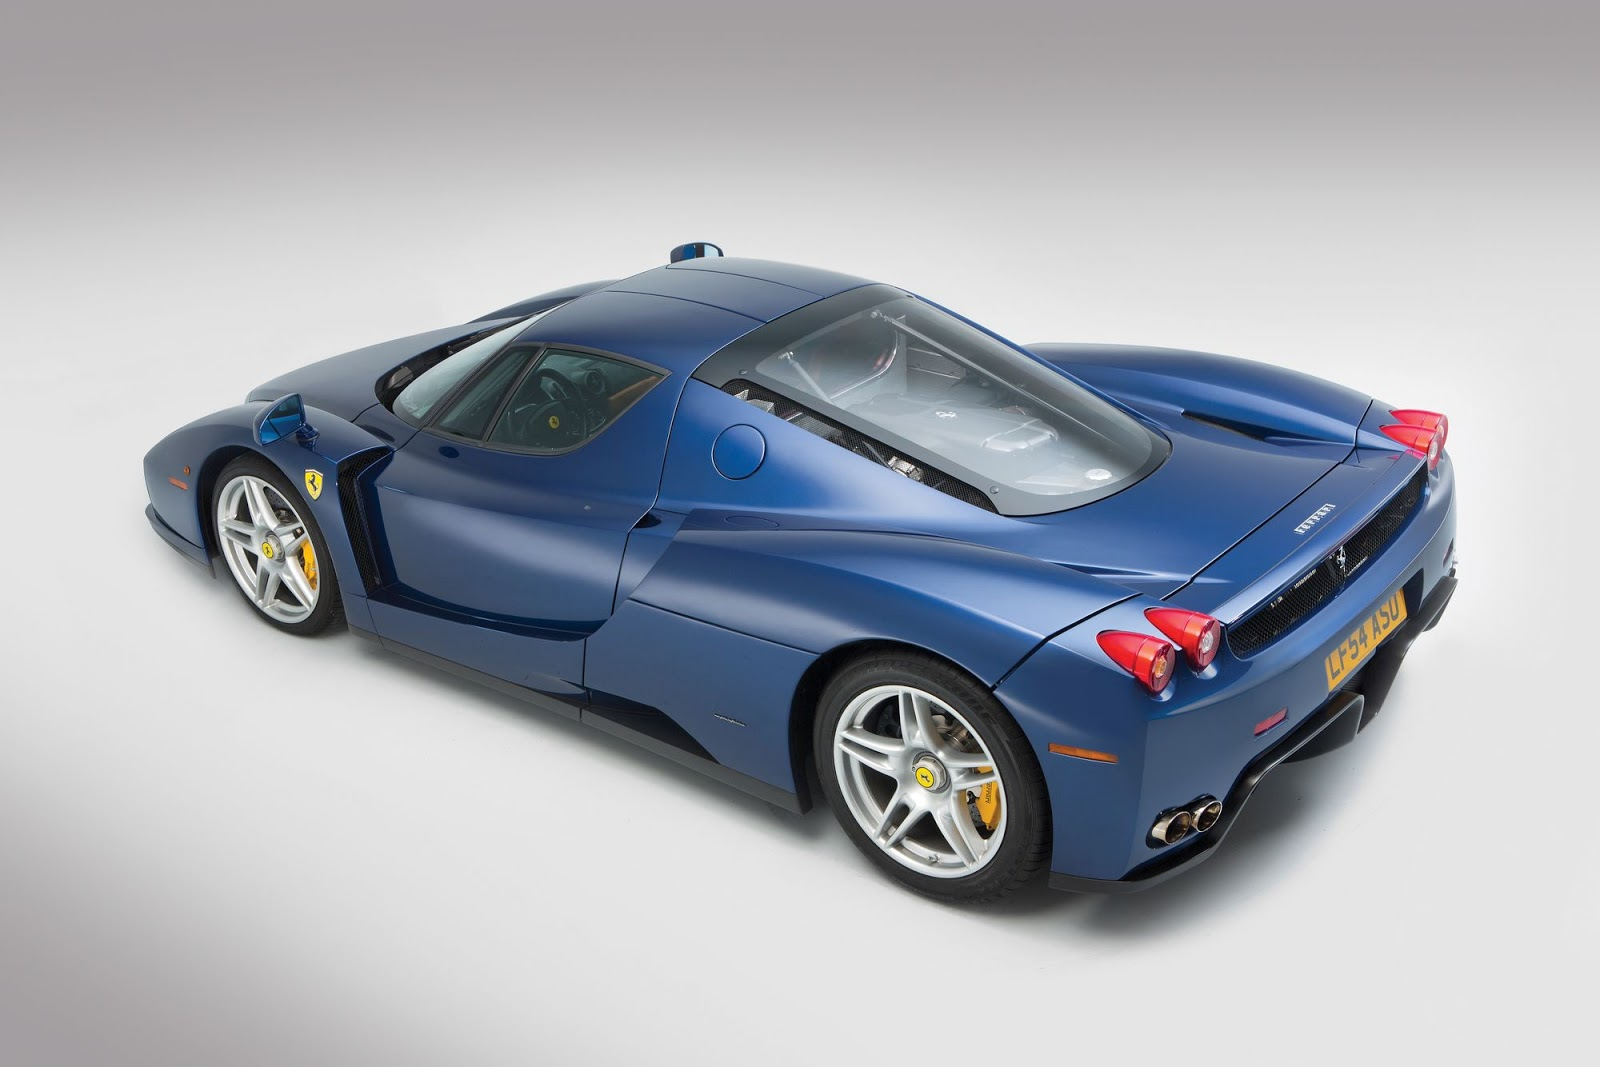 Blue Ferrari Enzo in auction (4)